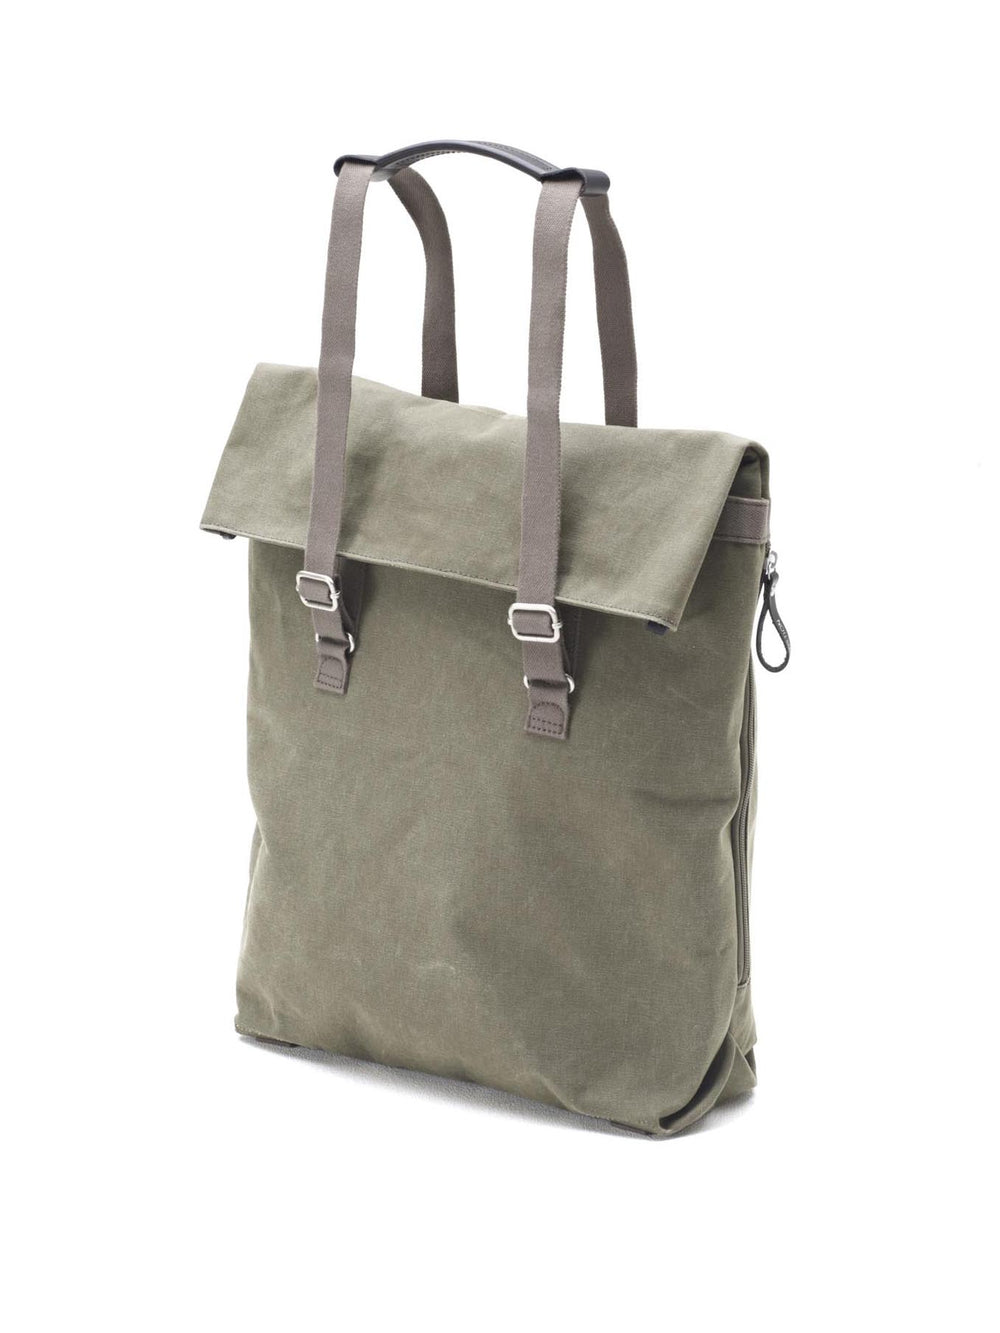 The strap system of Day Tote allow different carrying options from bag to backpack